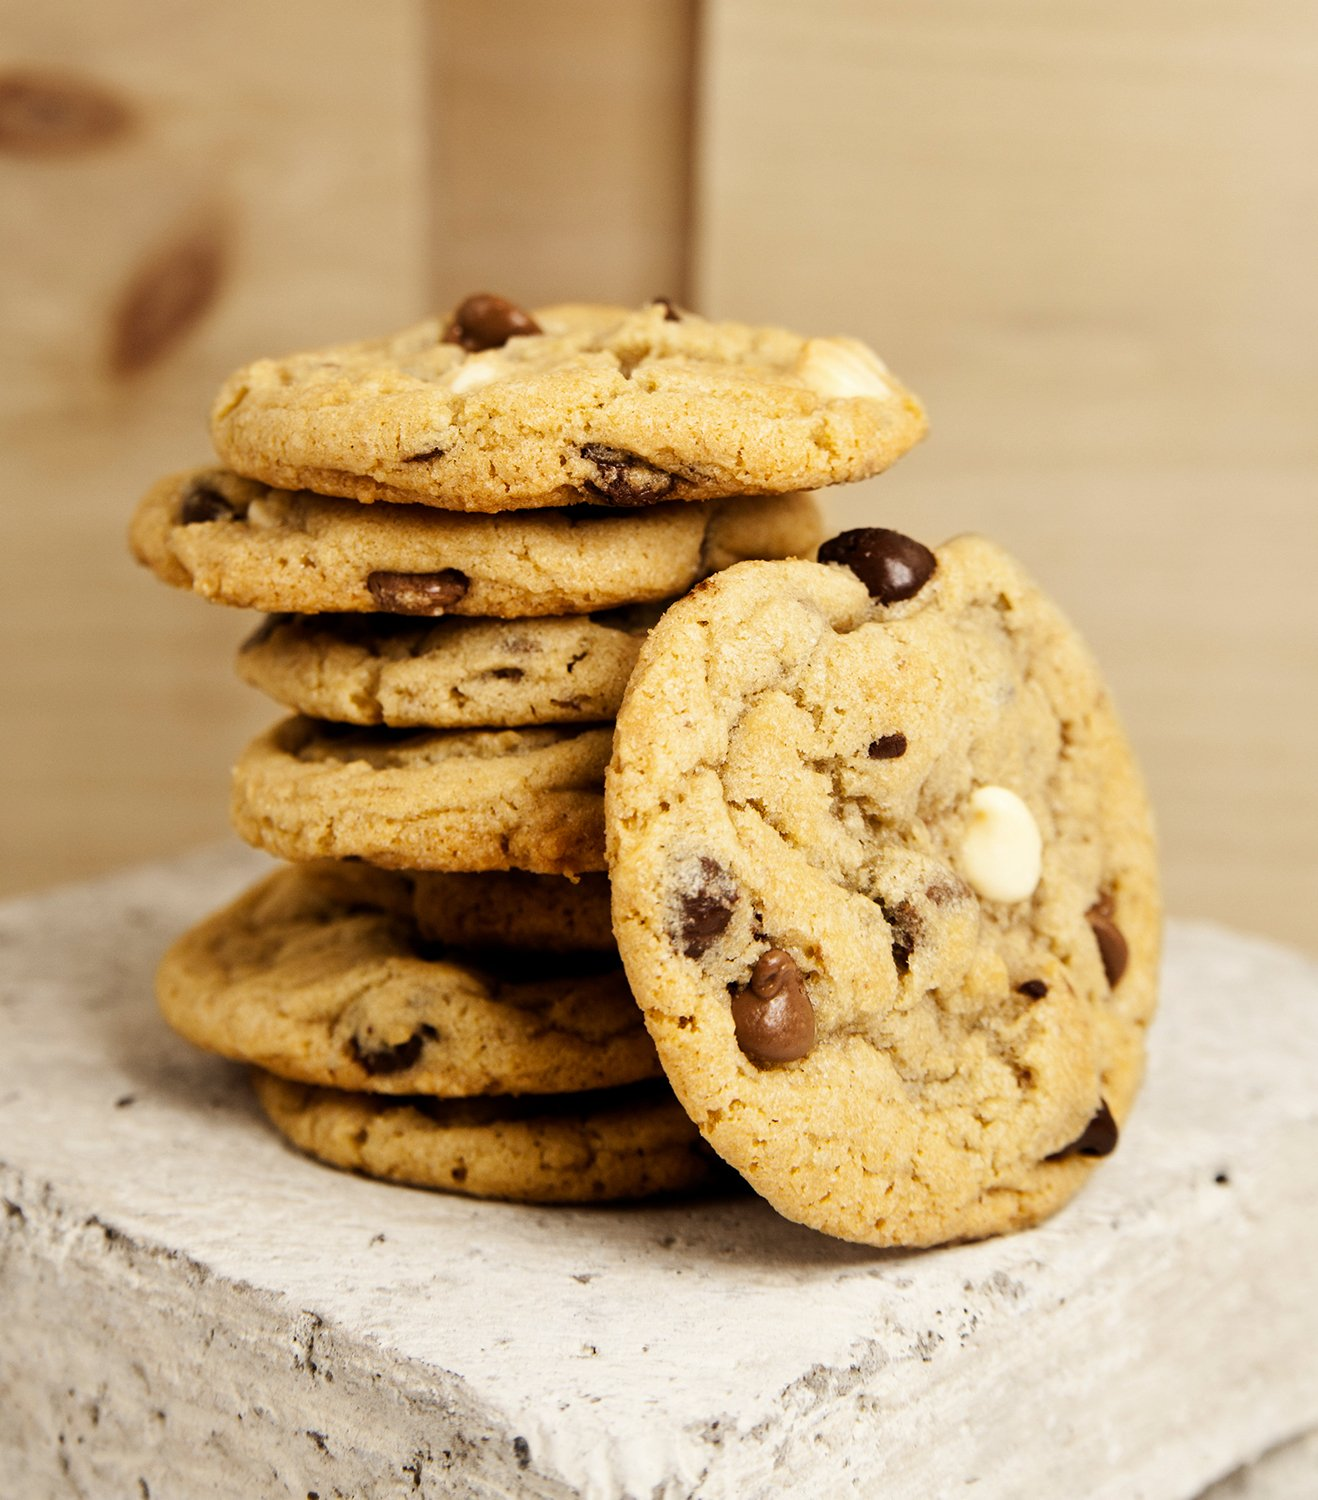 Sisters Gourmet Classic Chocolate Chip: Amazon.com: Grocery ...